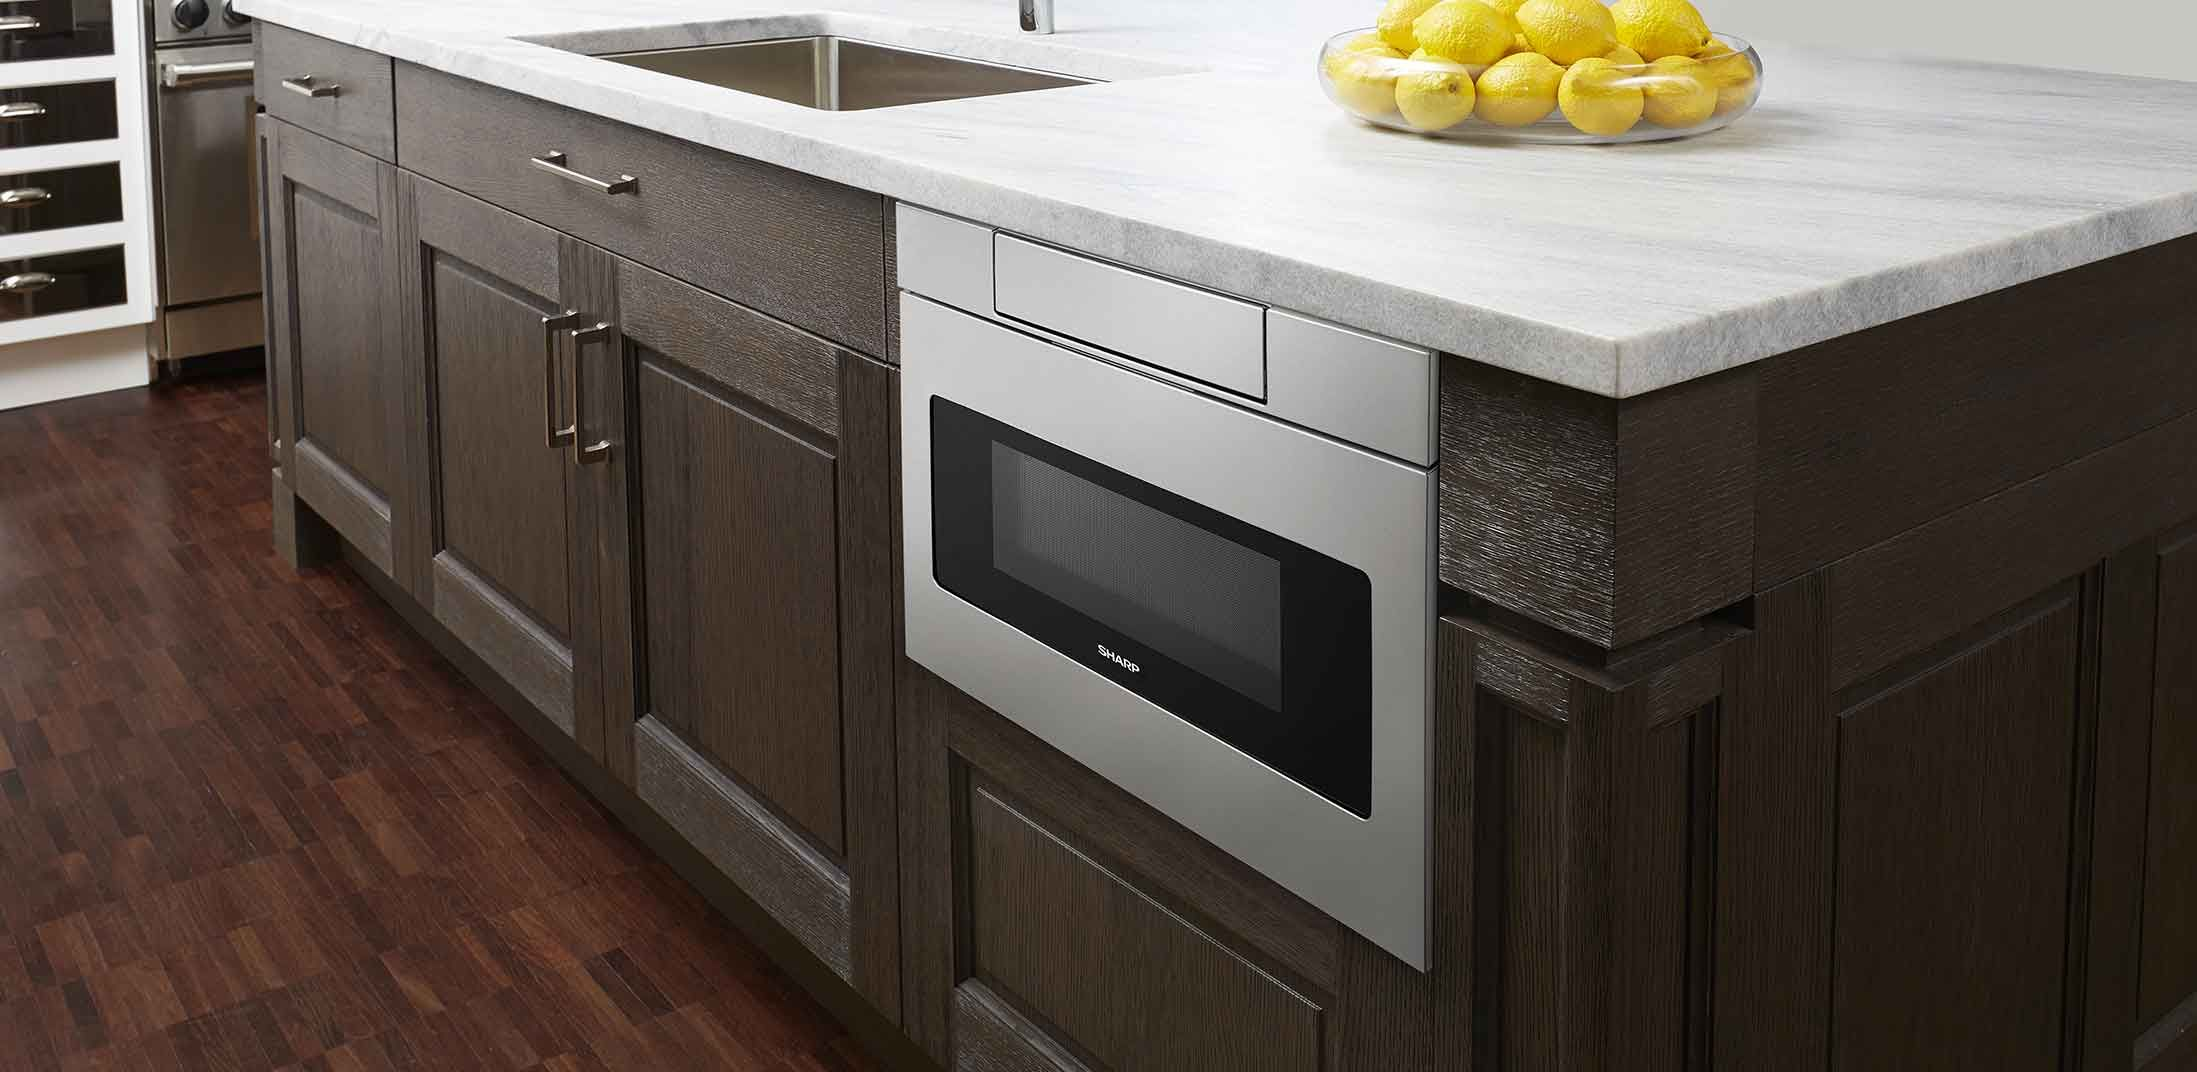 17 best ideas about Sharp Microwave Drawer on Pinterest | Microwave drawer,  Appliances and Sharp microwave